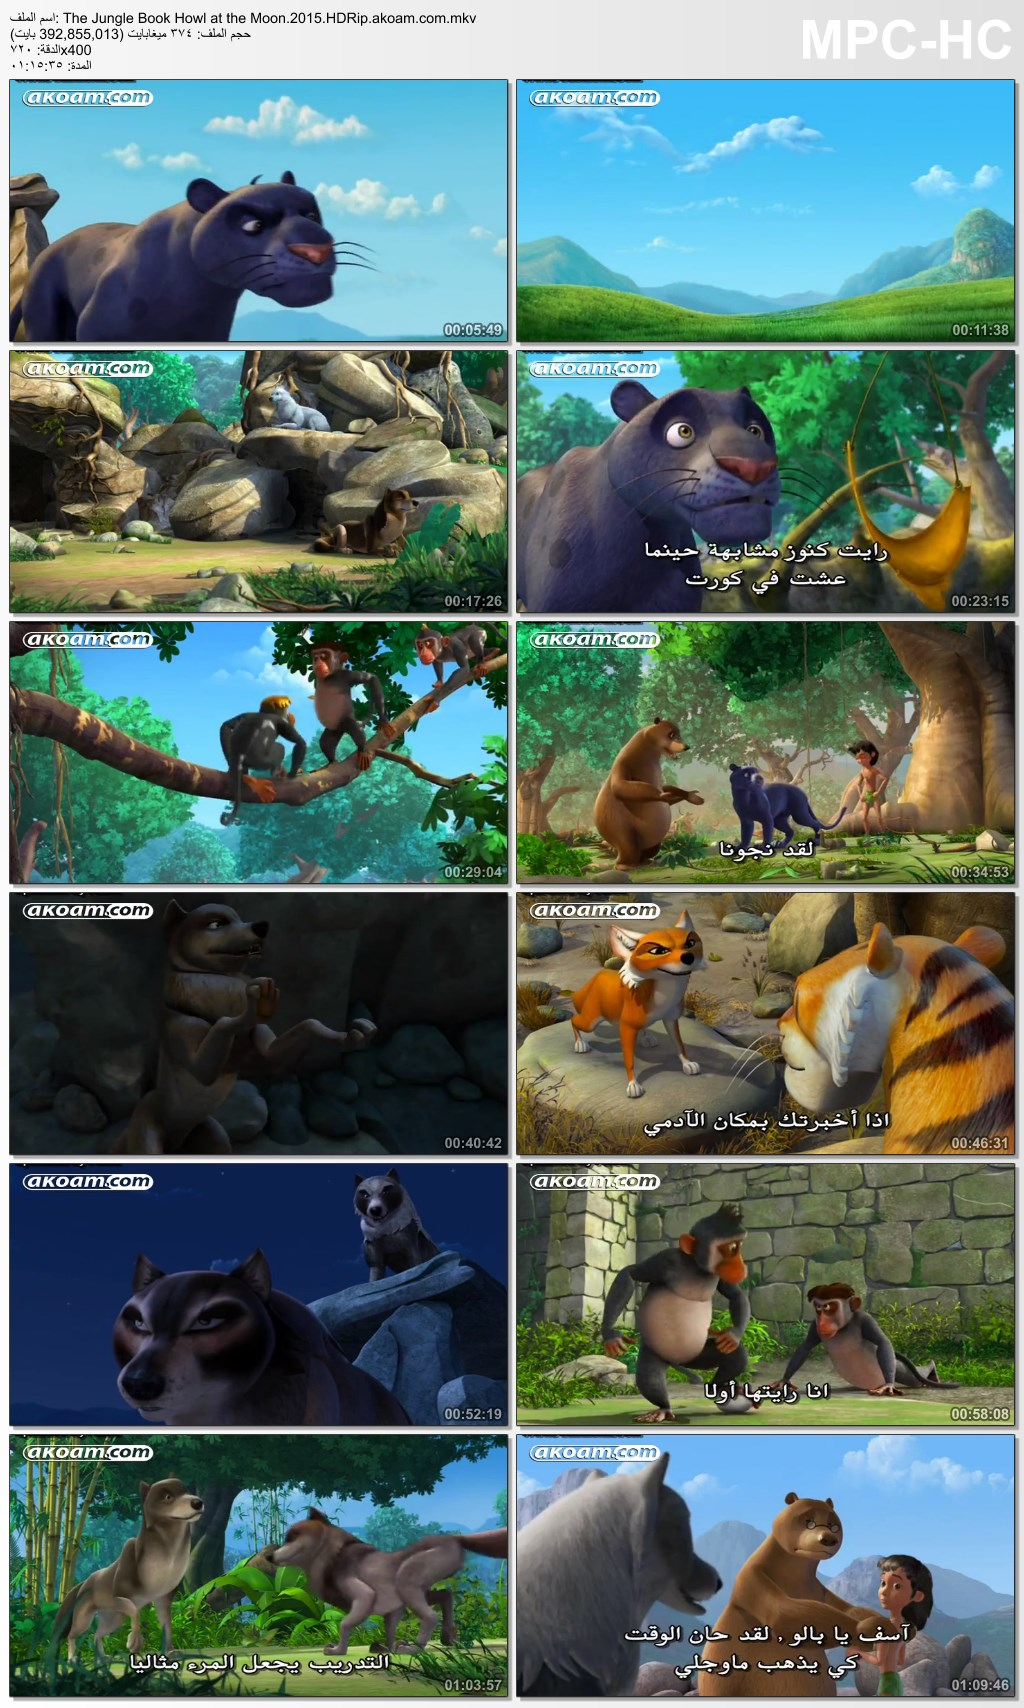 The Jungle Book: Howl at the Moon,The Jungle Book: Howl at the Moon 2015,The Jungle Book,الانمي,الانيميشن,العائلي